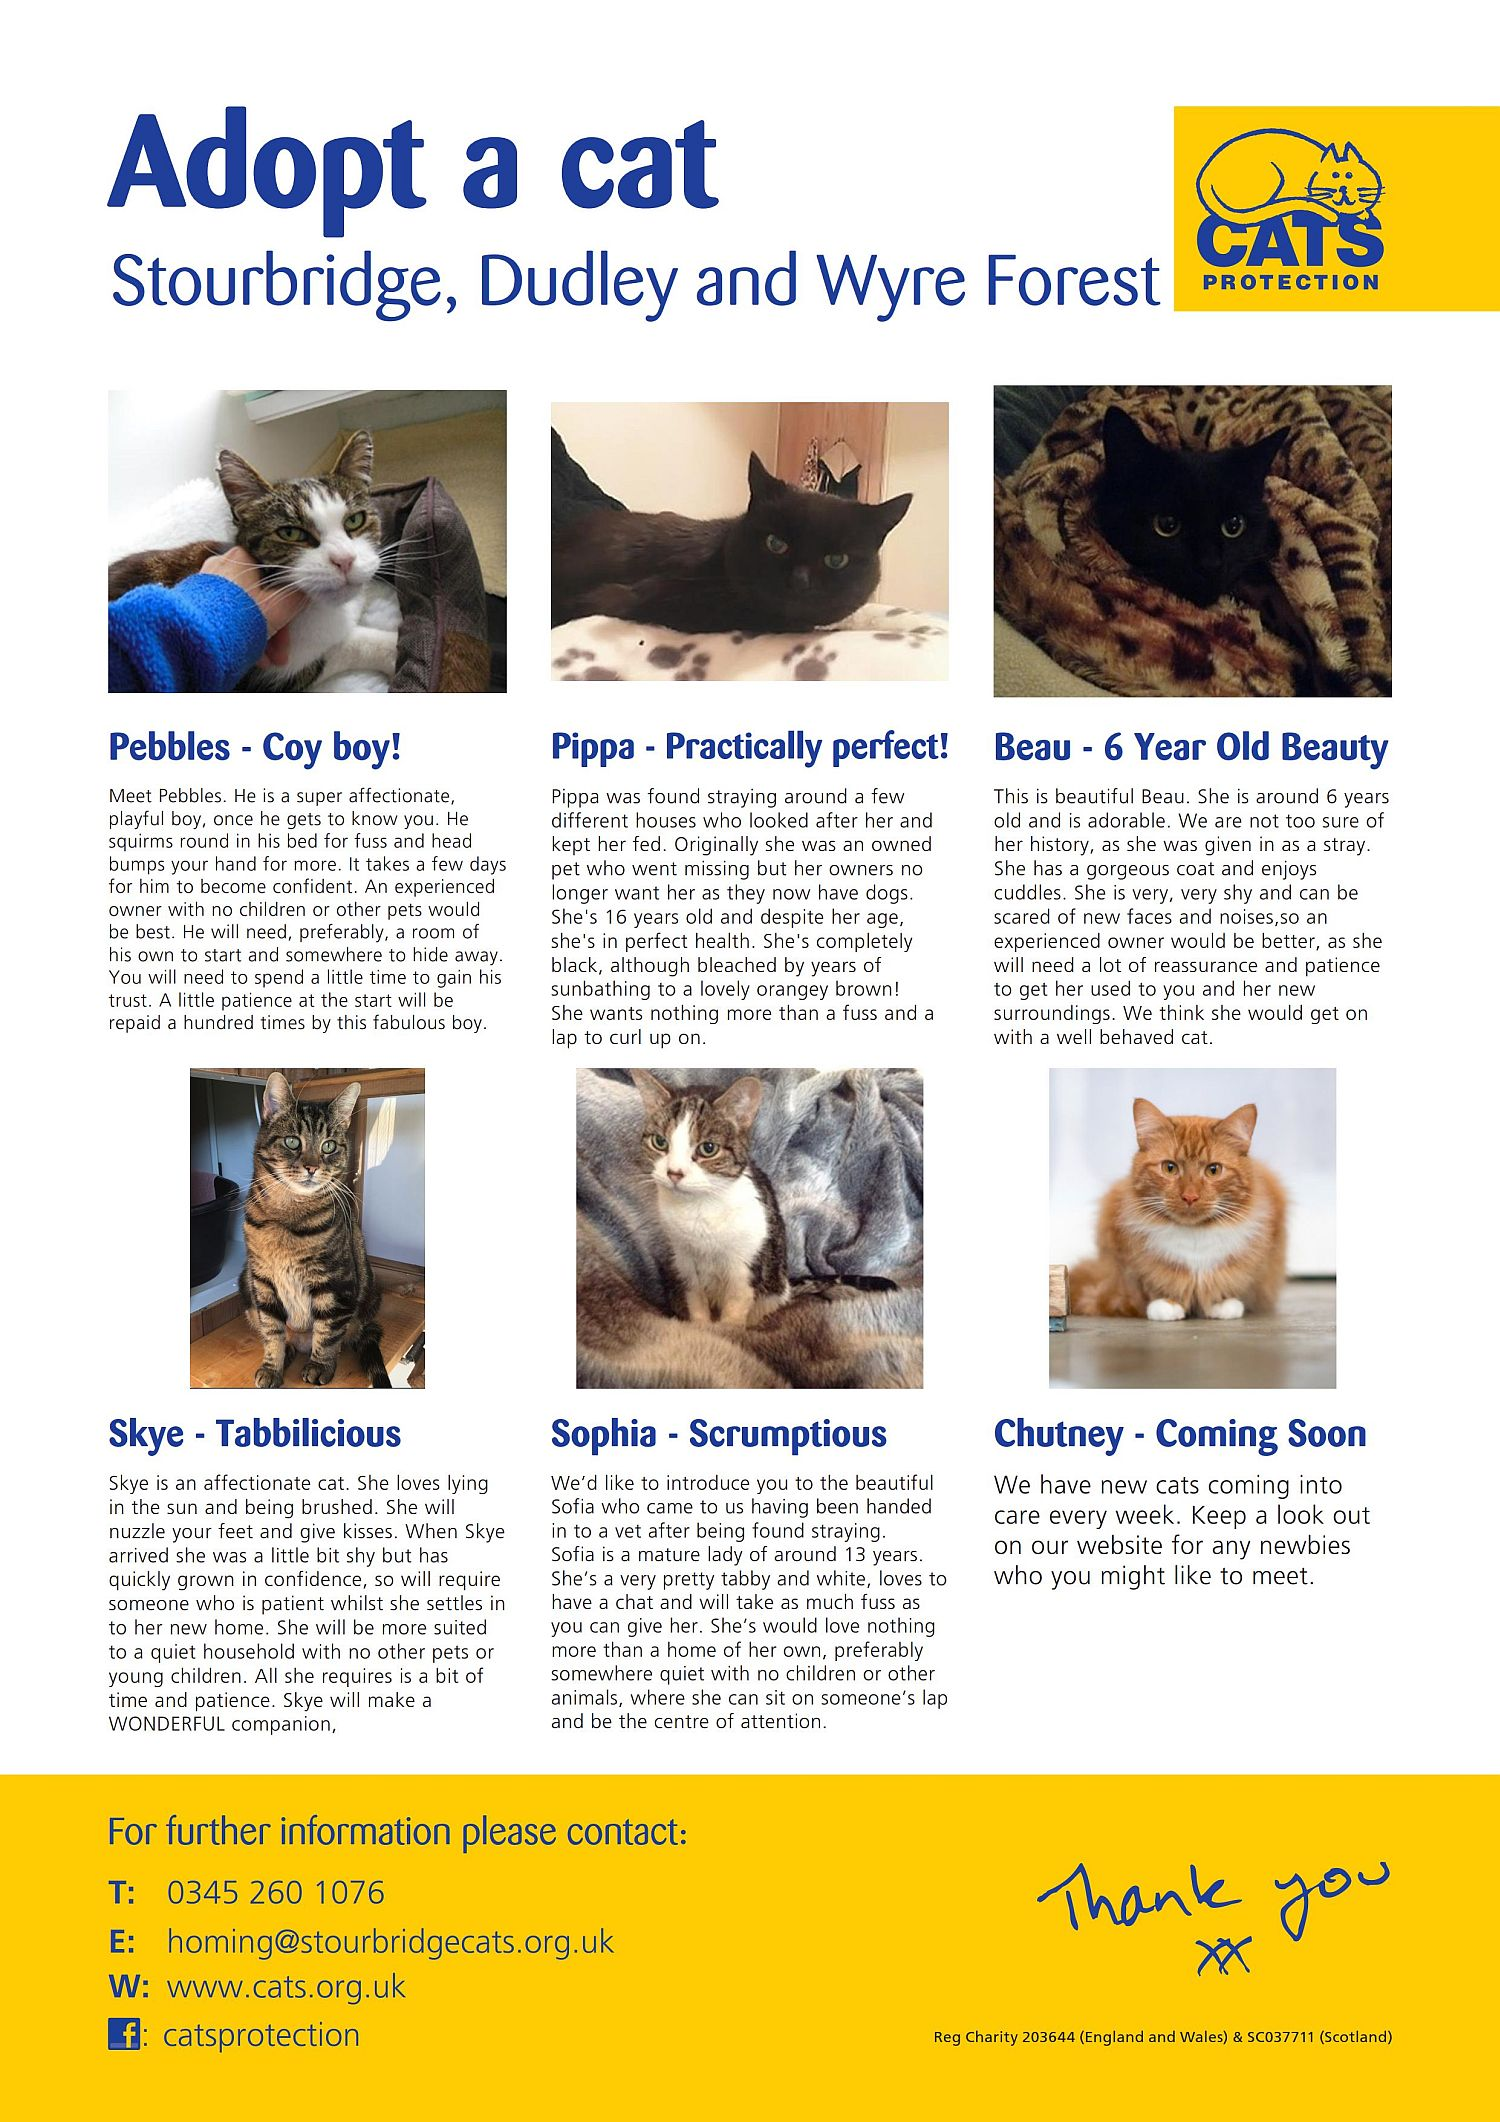 March 2018 Cats for Adoption